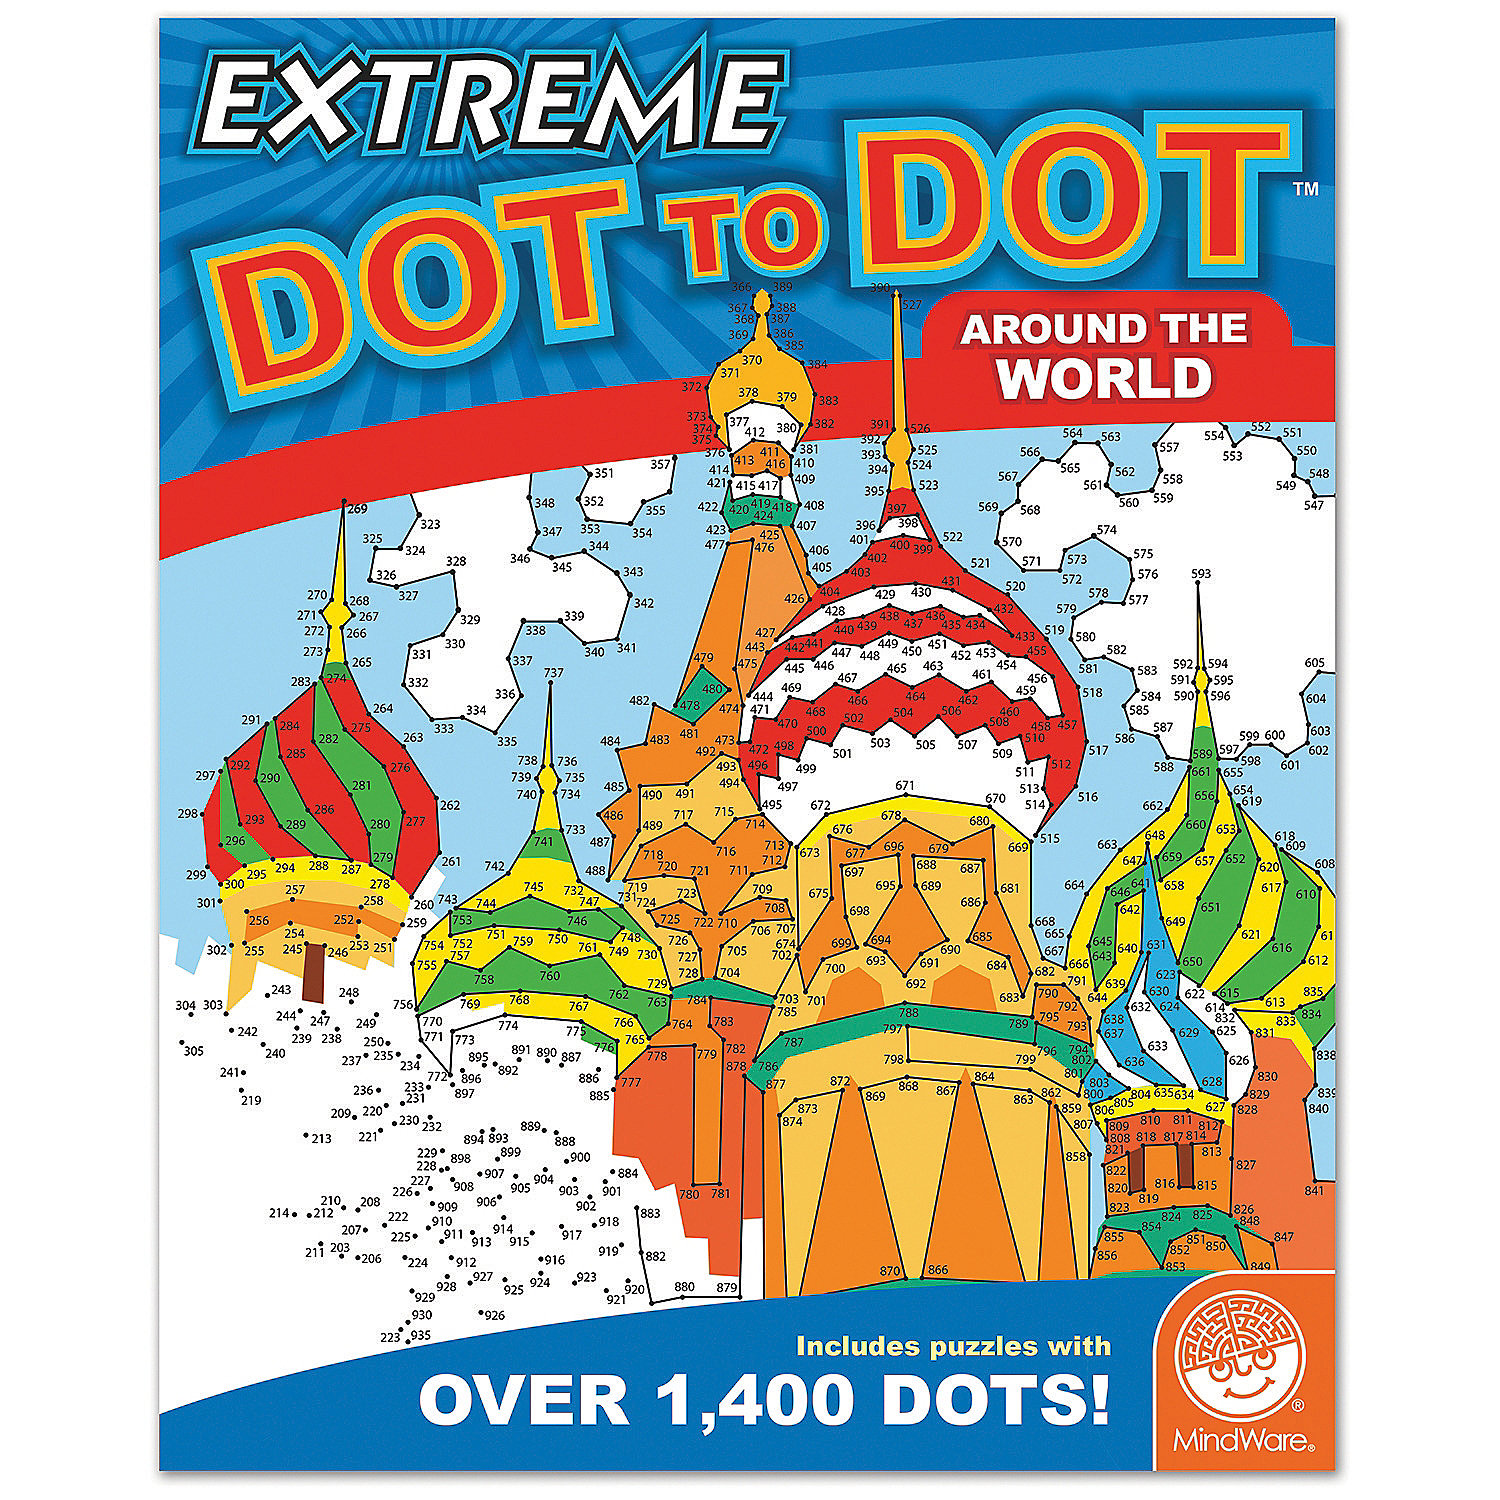 Free Extreme Dot to Dot Images - Frompo